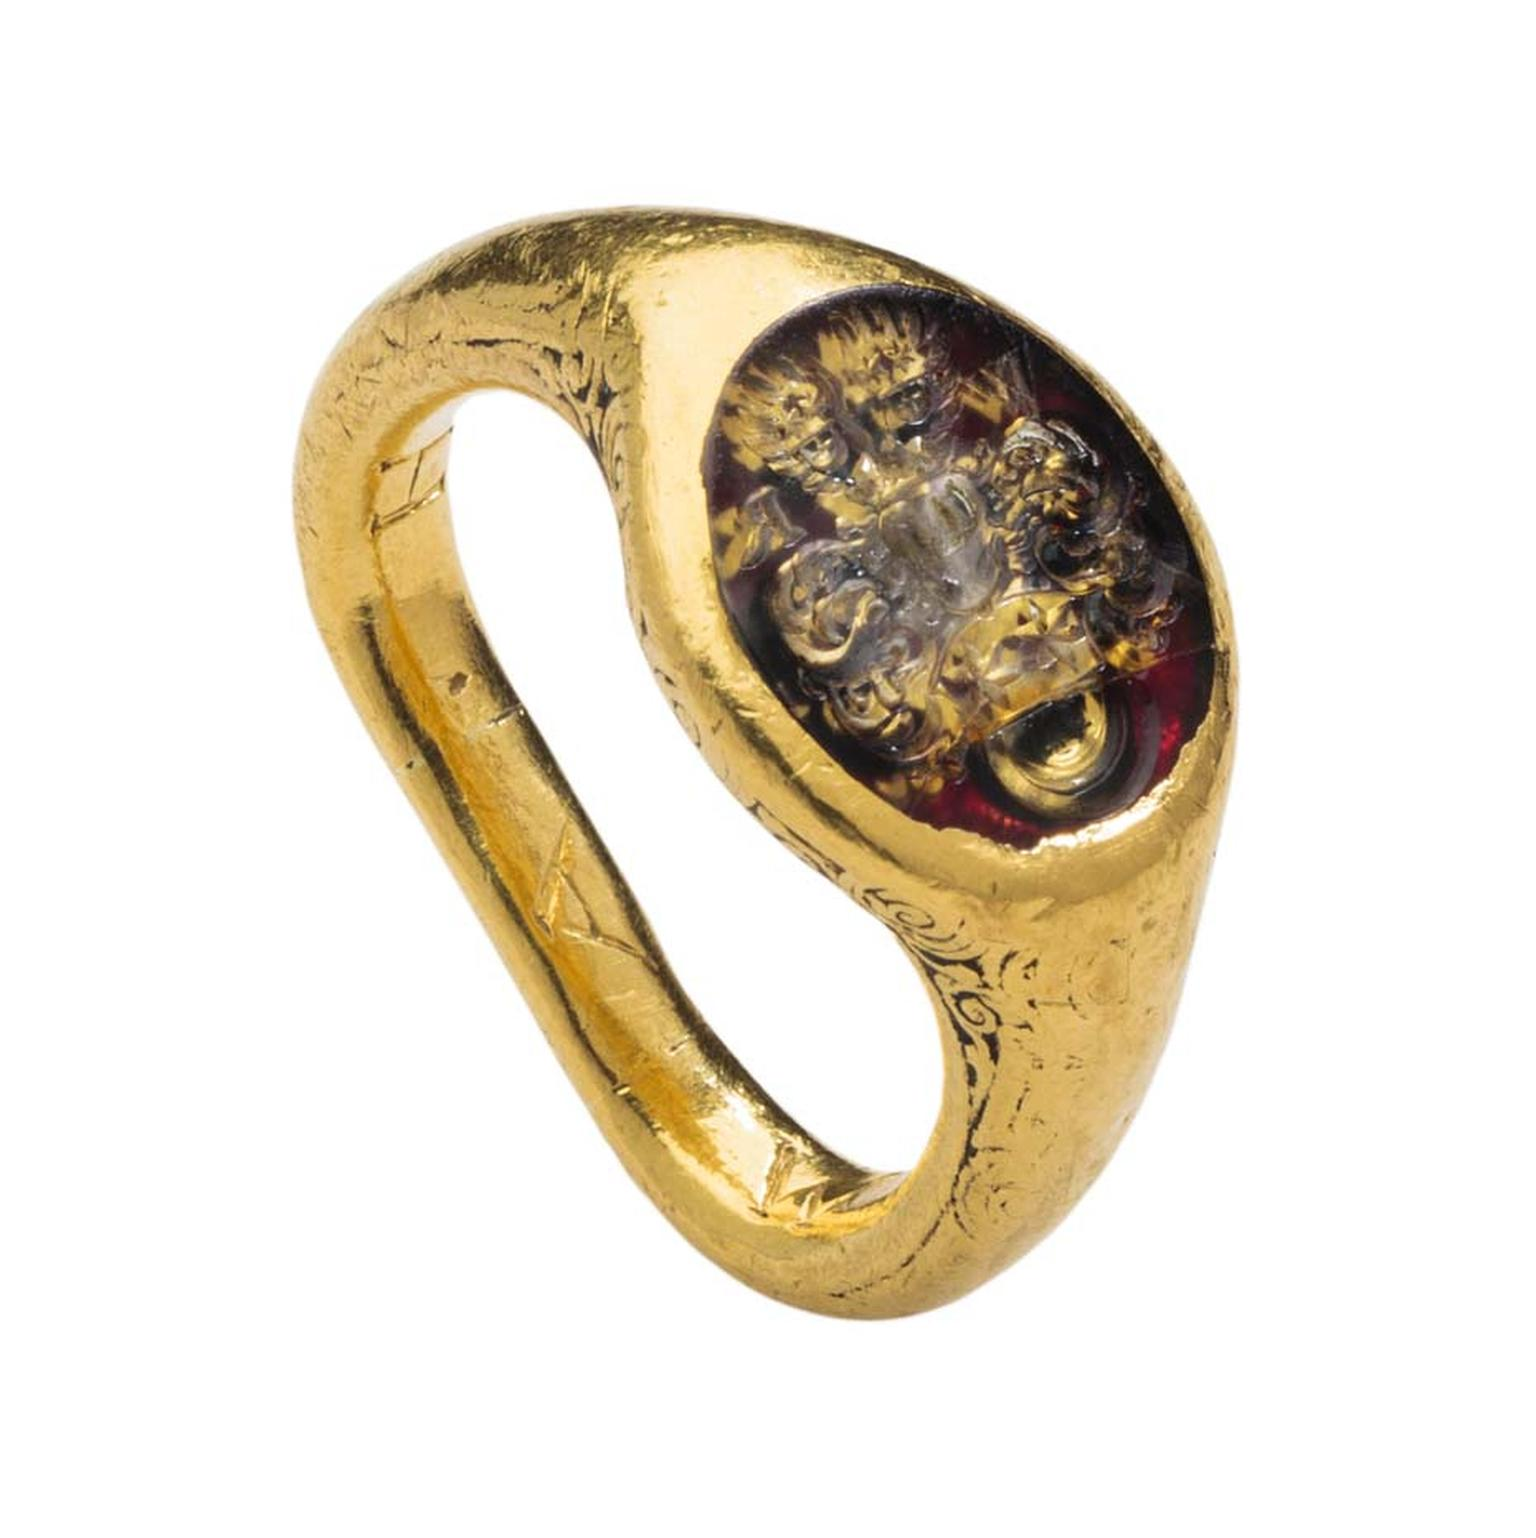 Treasures and Talismans Exhibition_Intaglio Signet Ring side.jpg